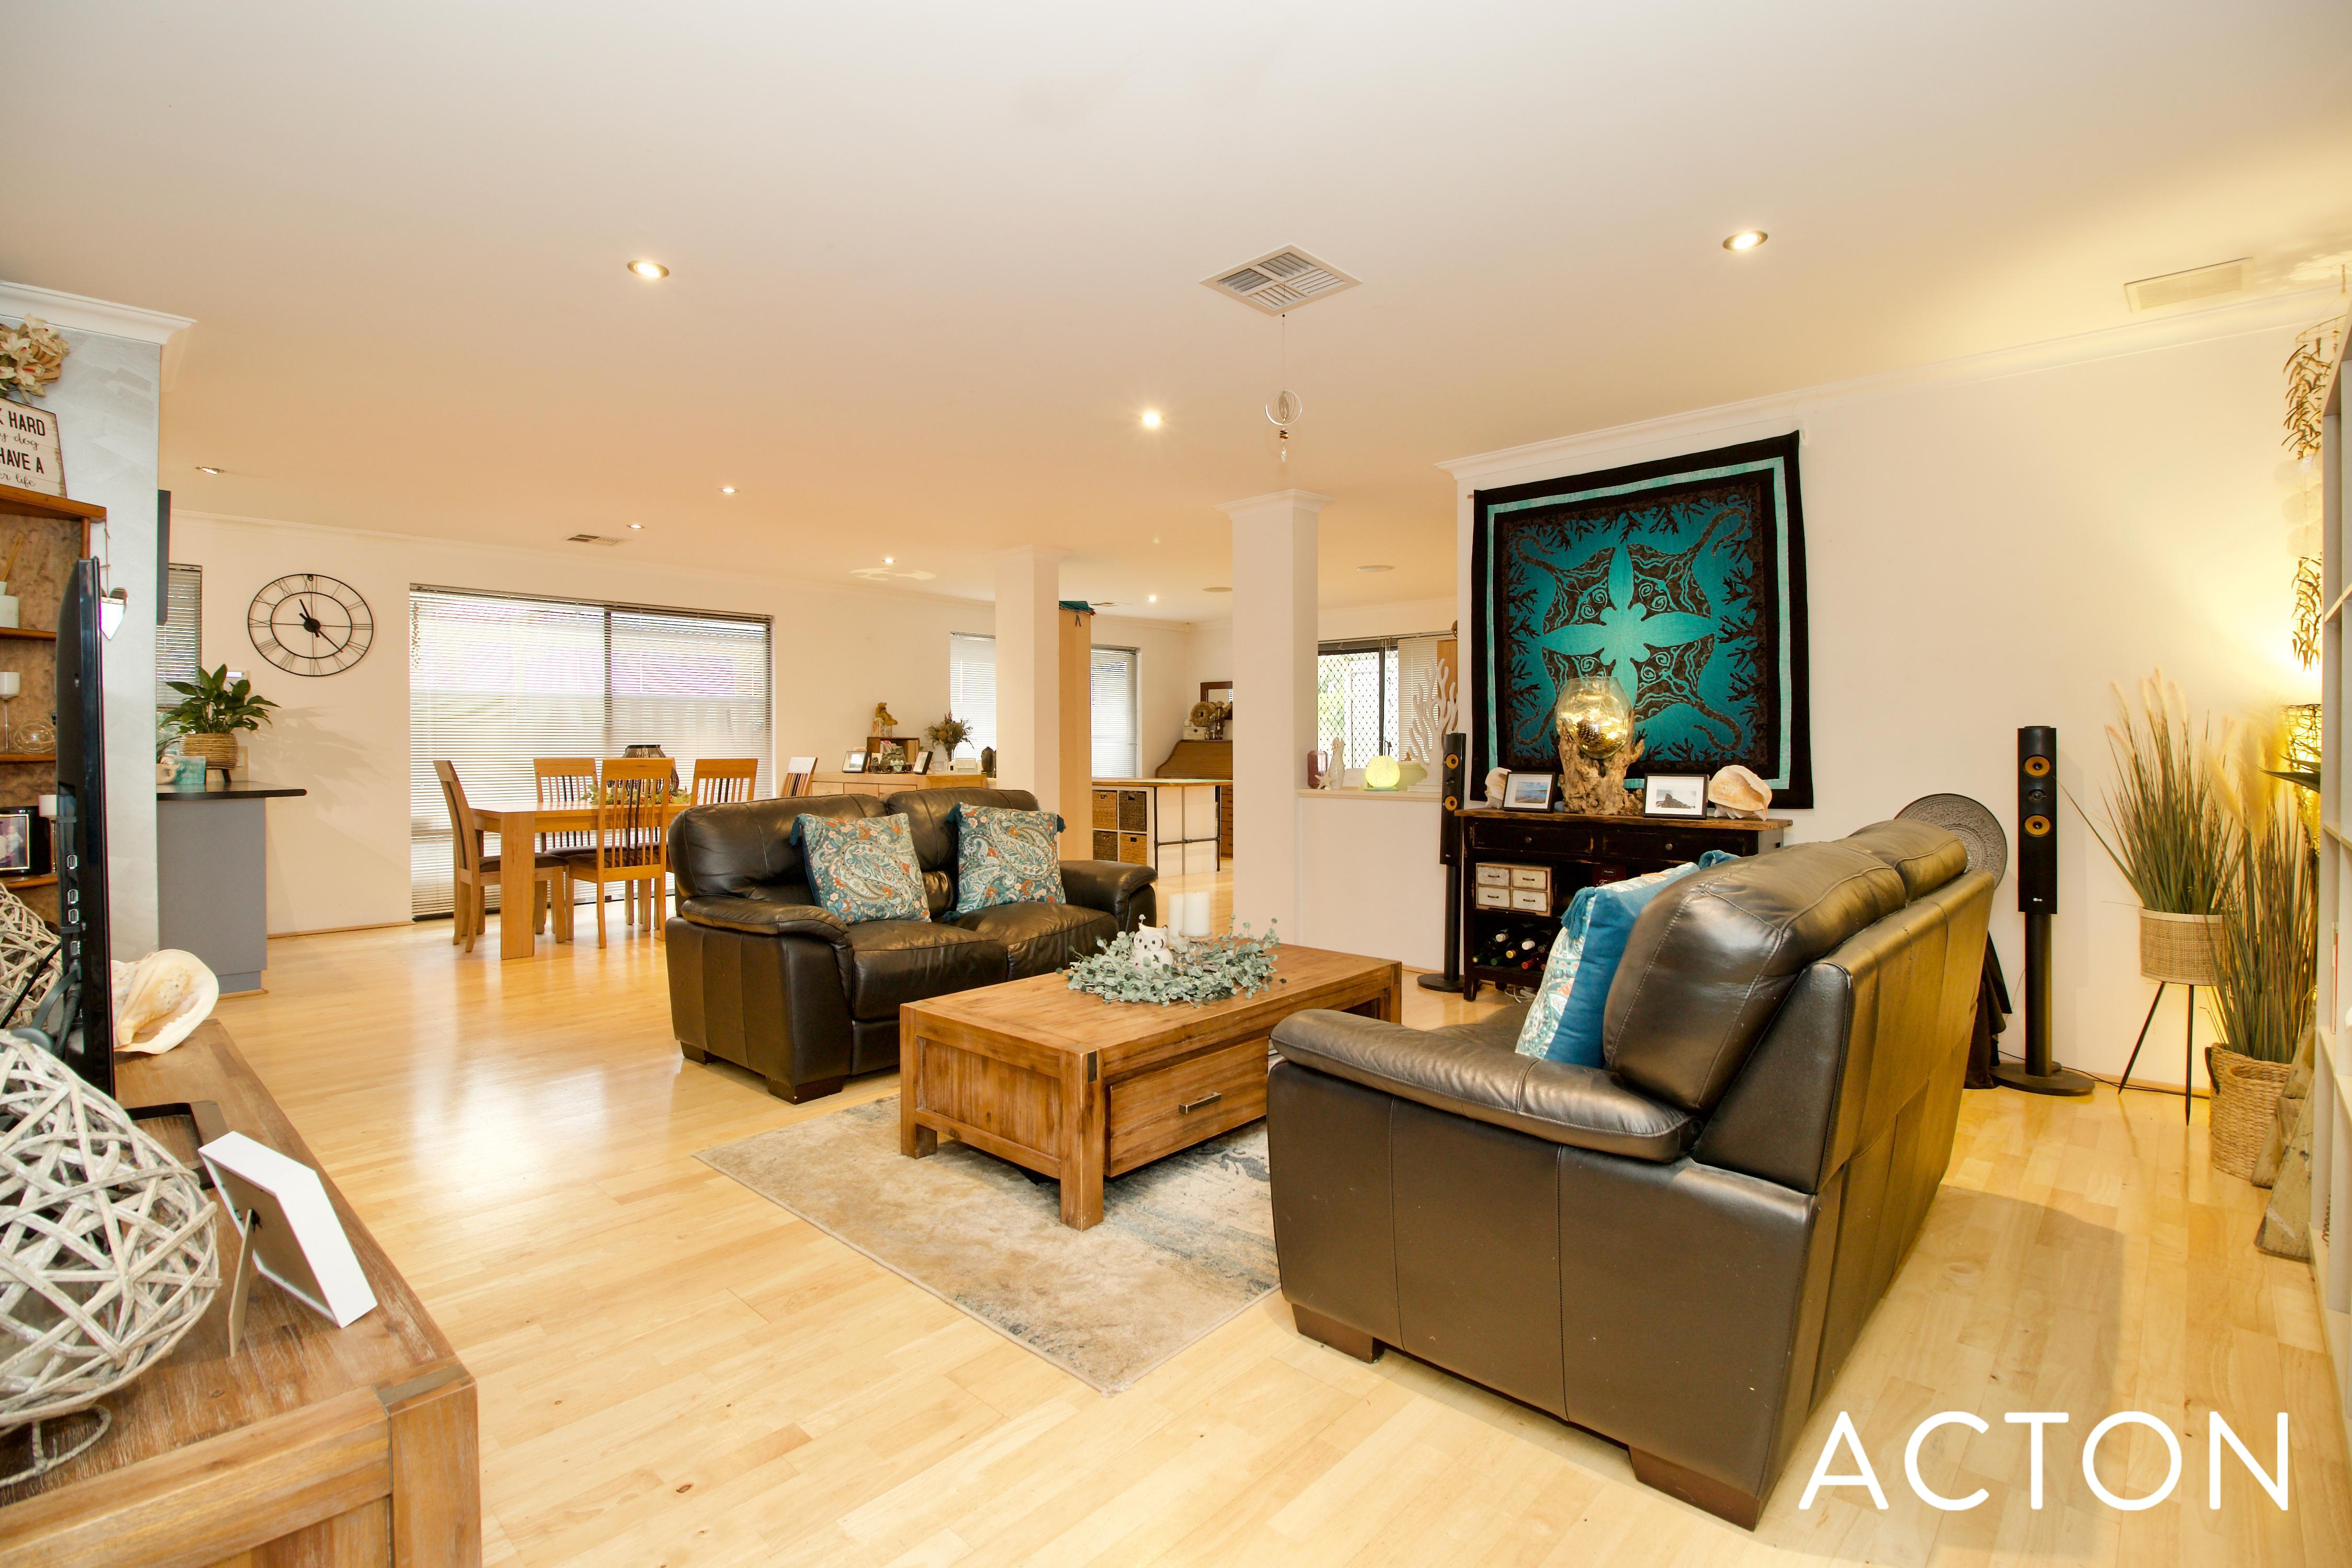 24 Rhapsody Close Shoalwater - House For Sale - 23231477 - ACTON Rockingham